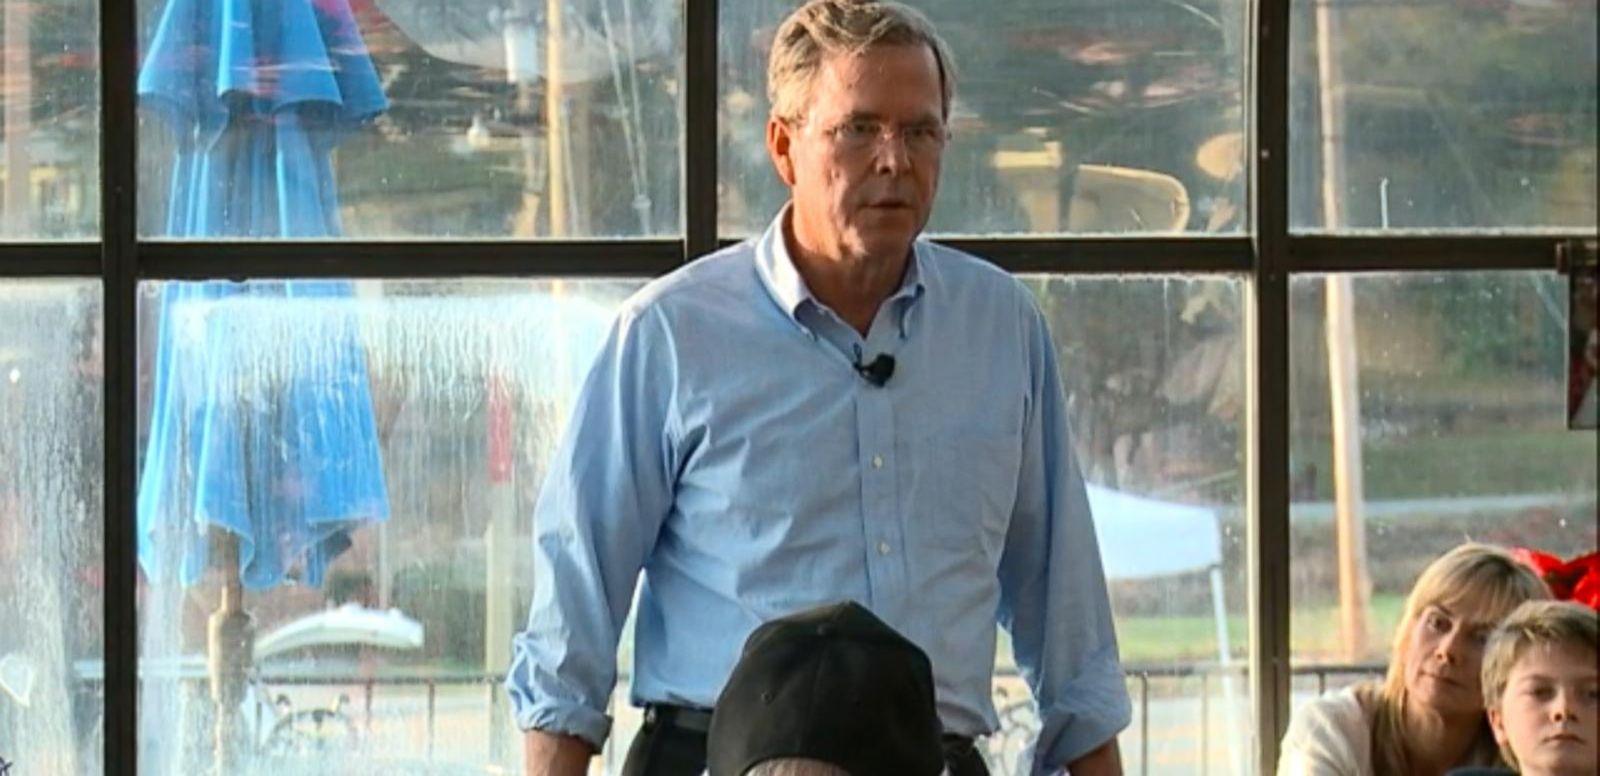 VIDEO: Jeb Bush Makes Bacon Joke 'I was Like the Pig in the Breakfast Experience'